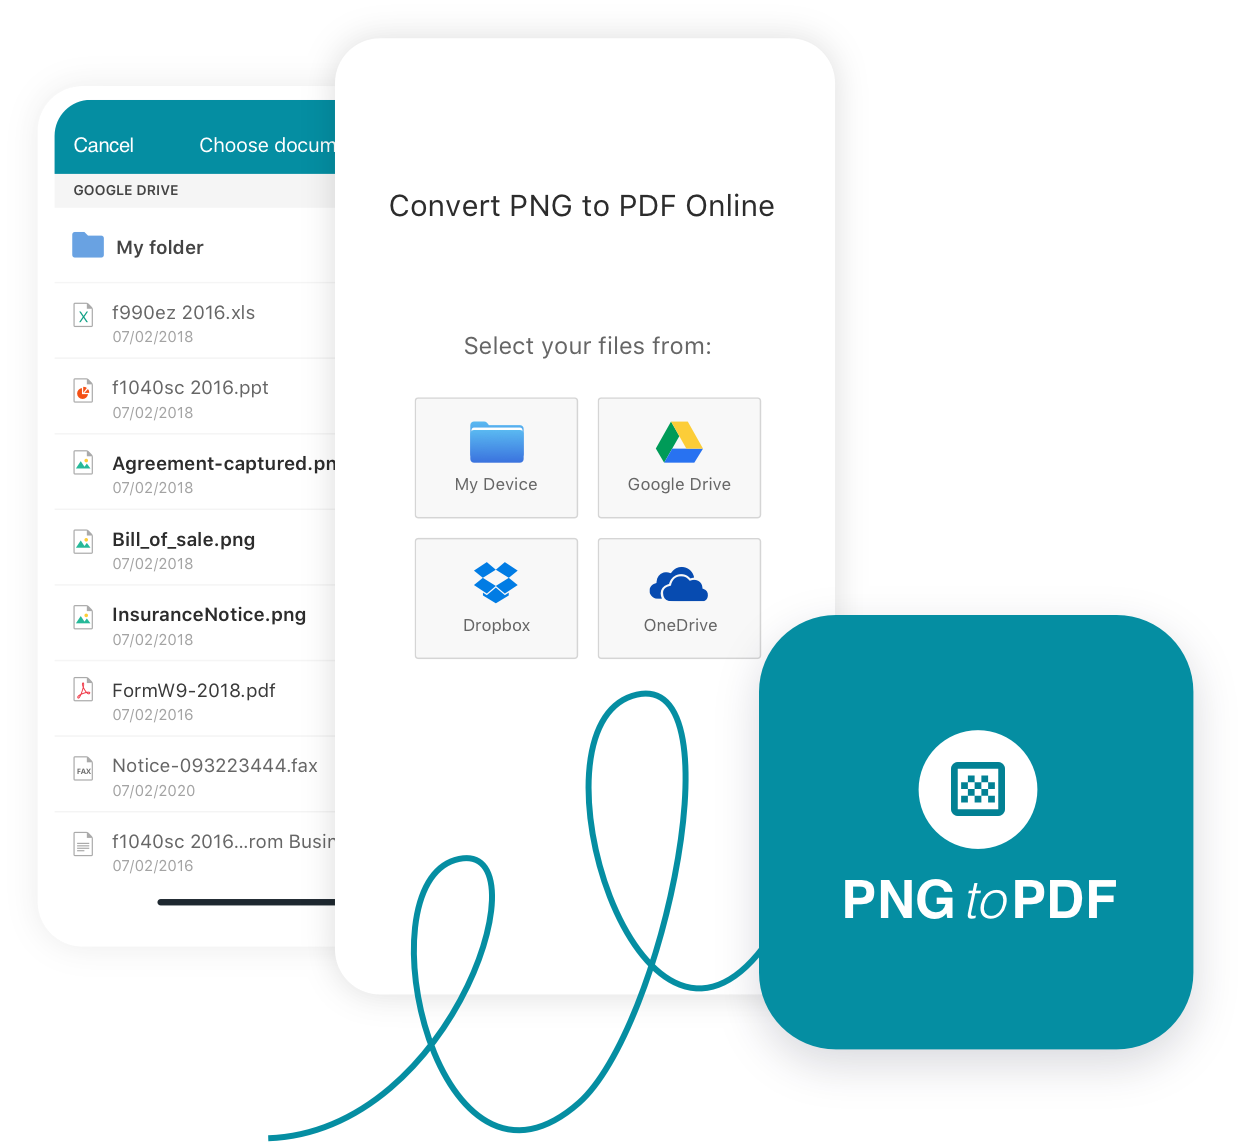 Png To Pdf Convert Png Images To Pdfs Online Free Converter Altoconvertpngtopdf